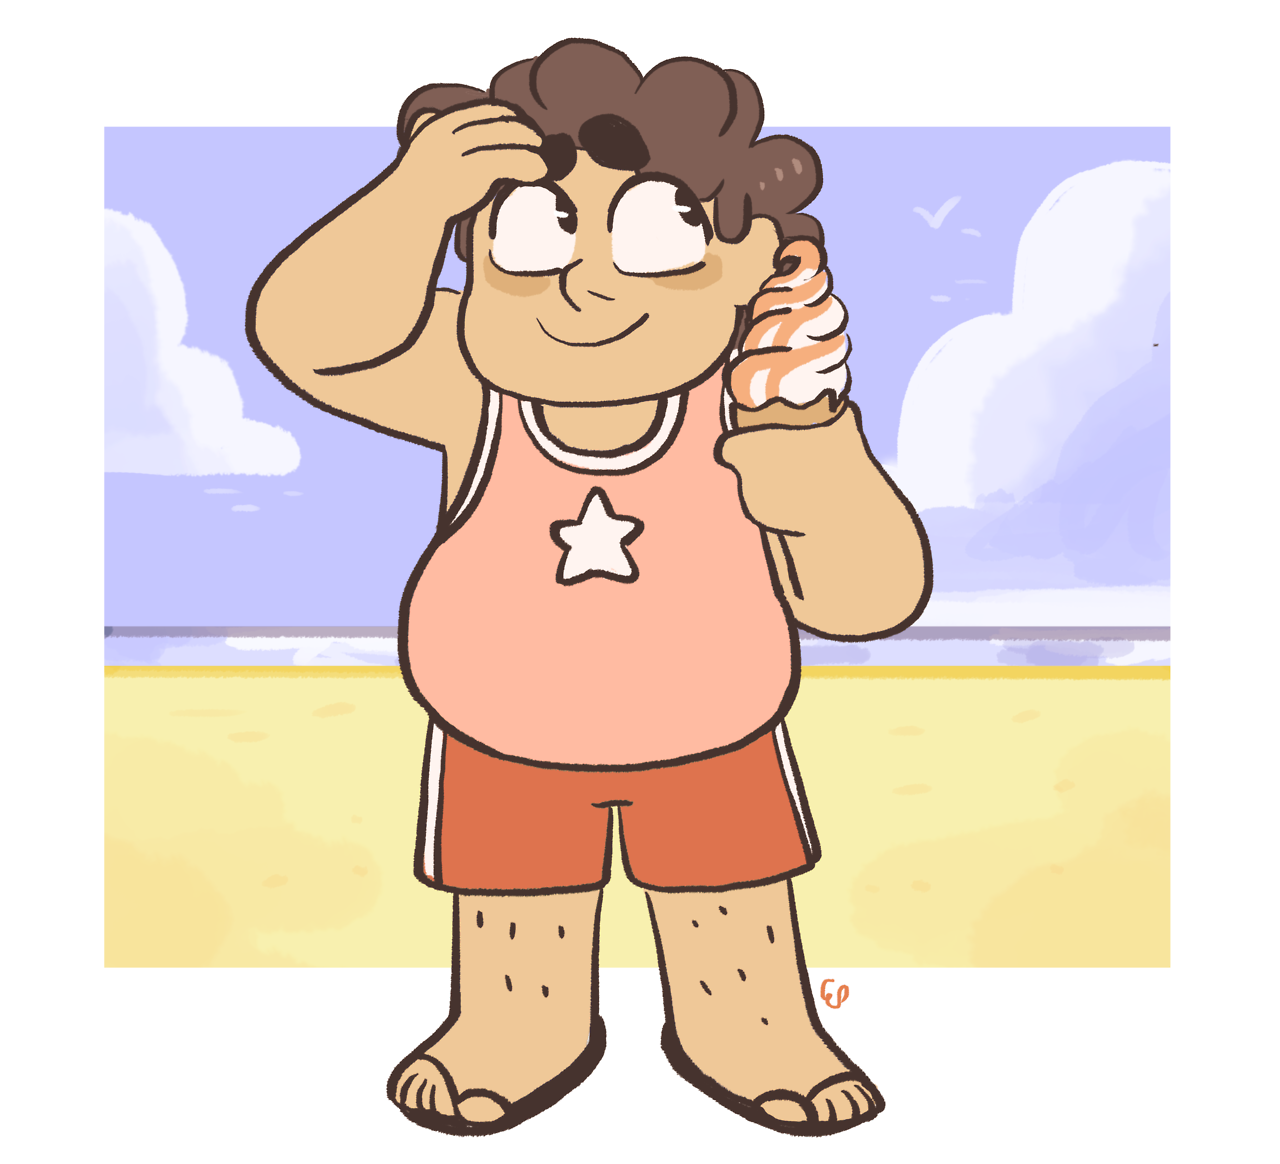 a small steven… i wanted to draw something summery!